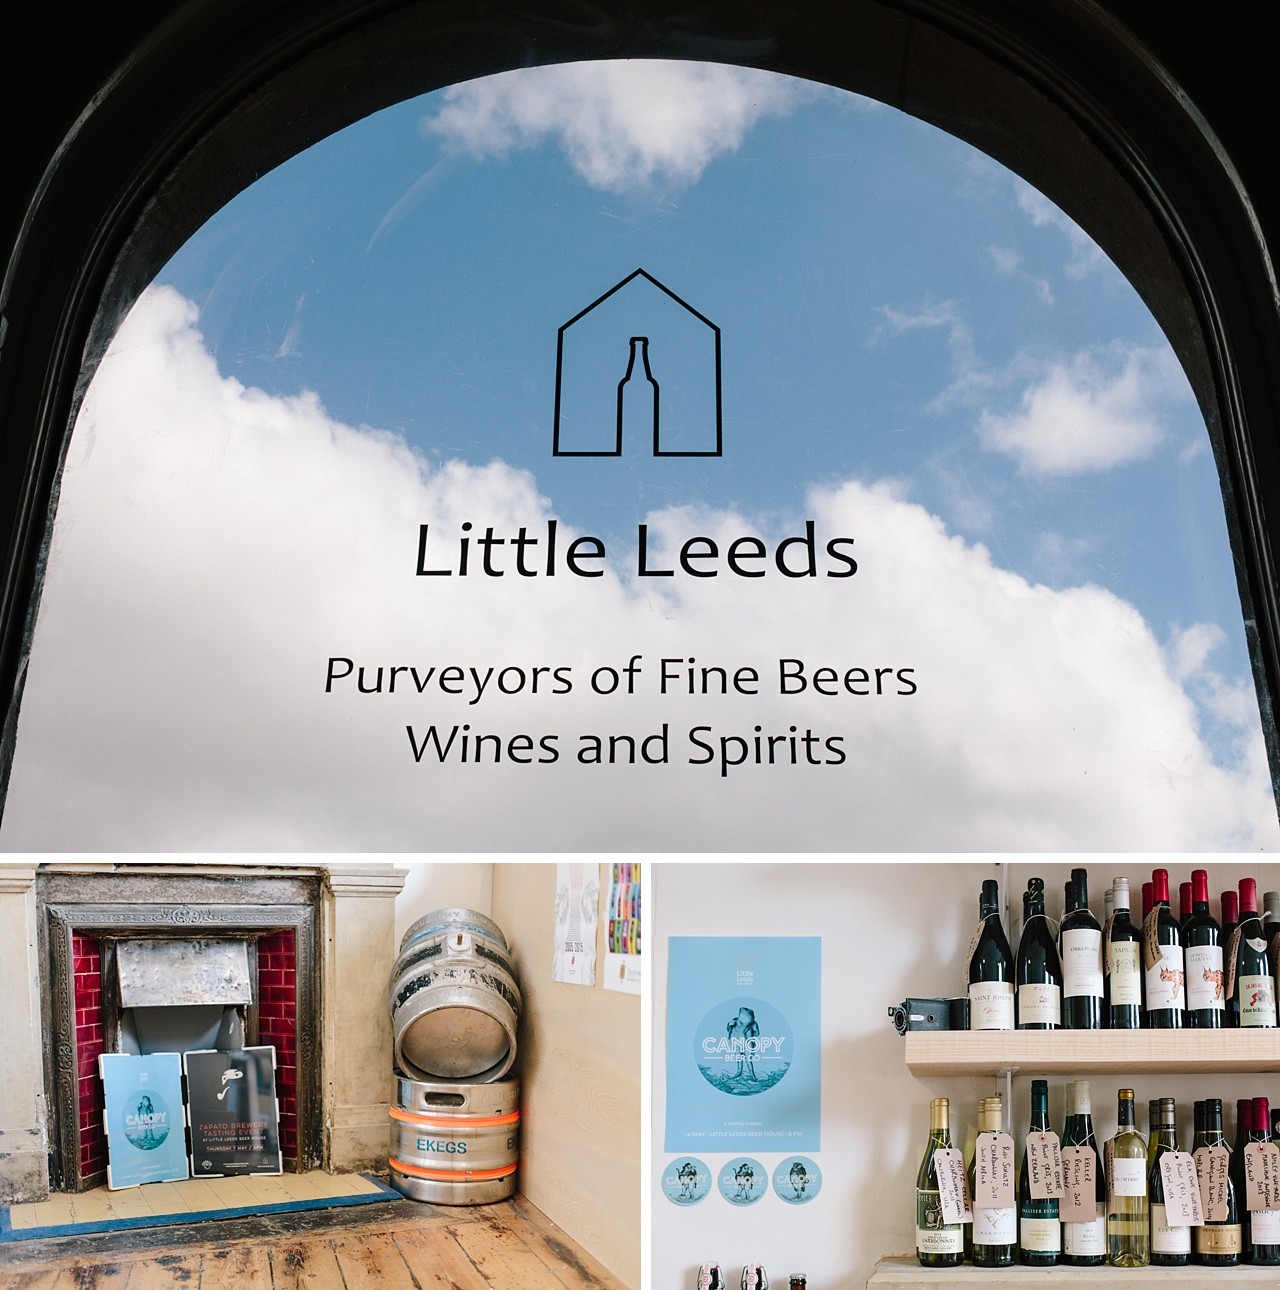 Leeds Little, craft beer photographer